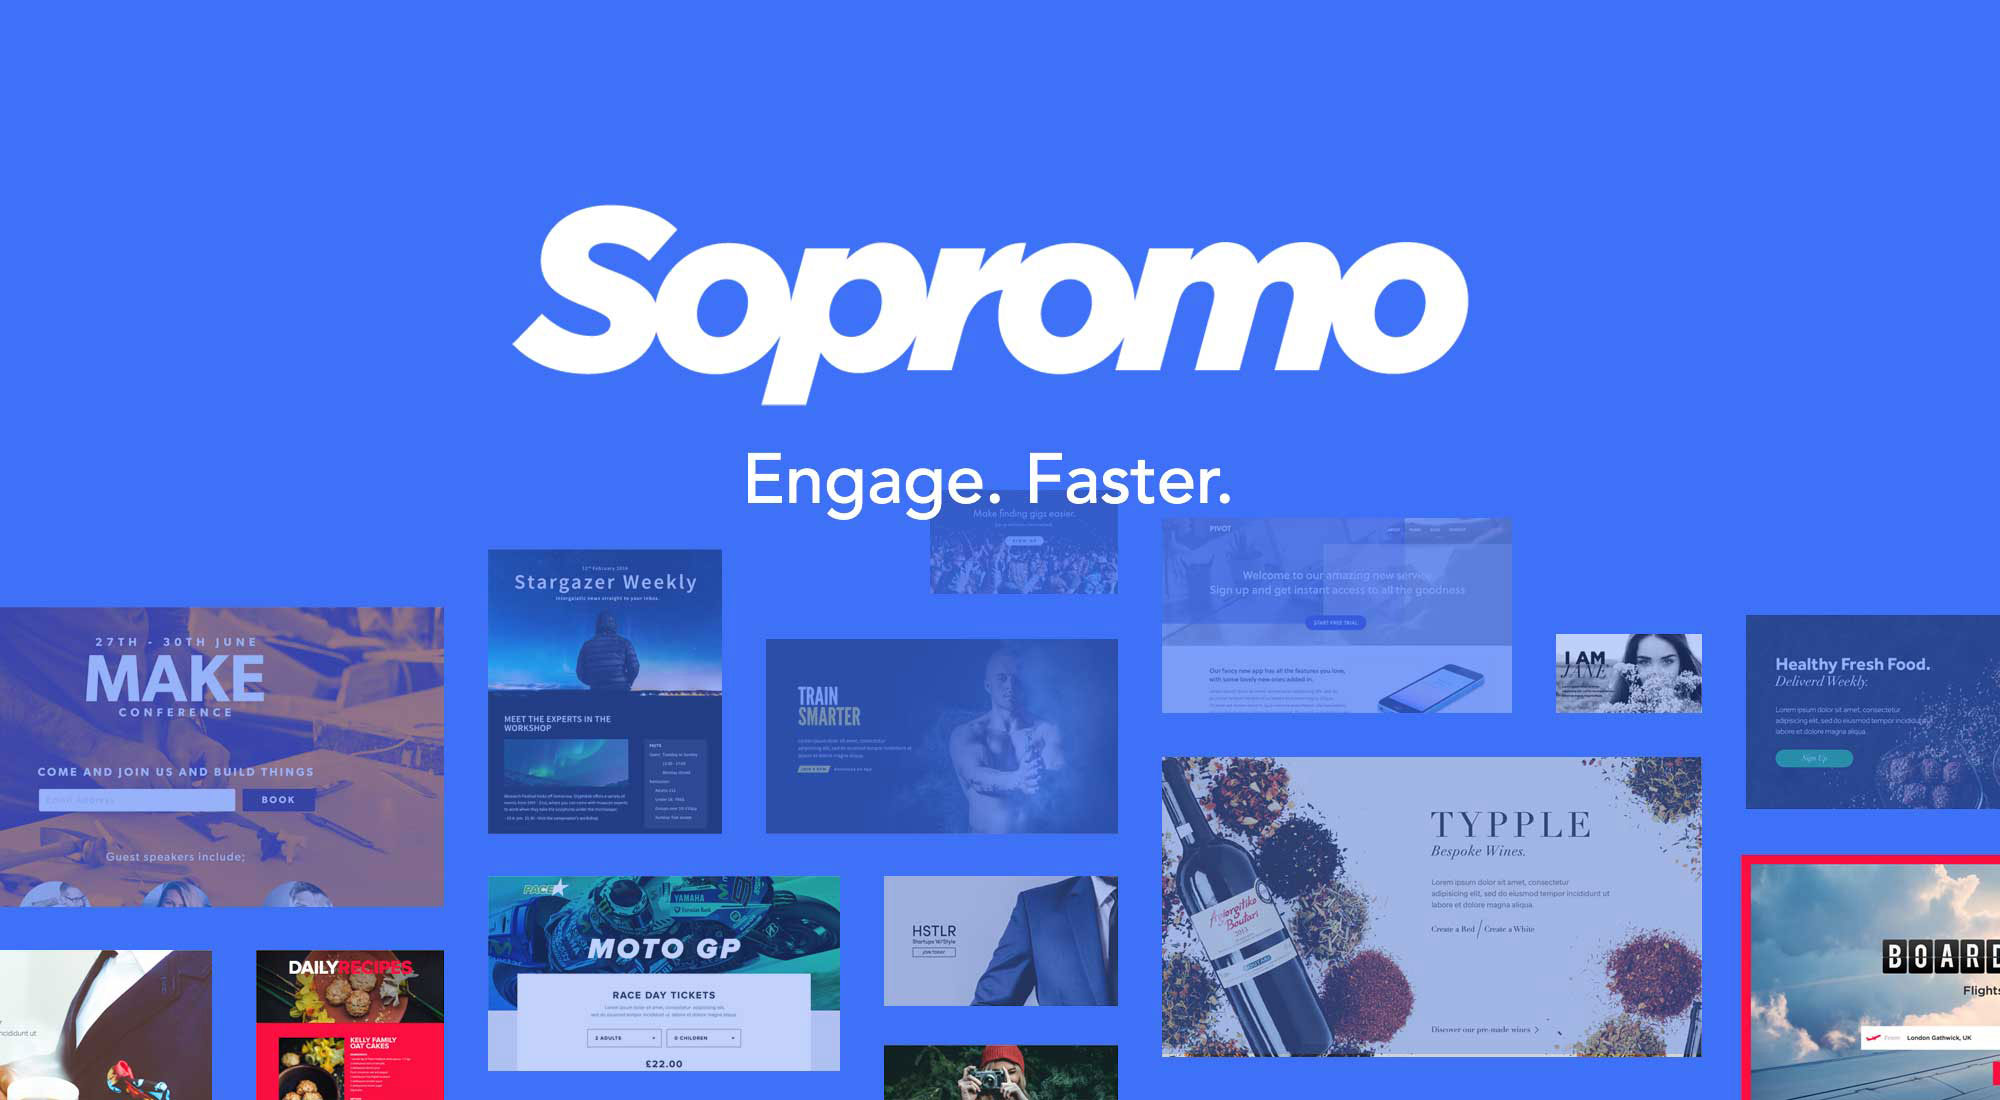 Sopromo - Engage Faster